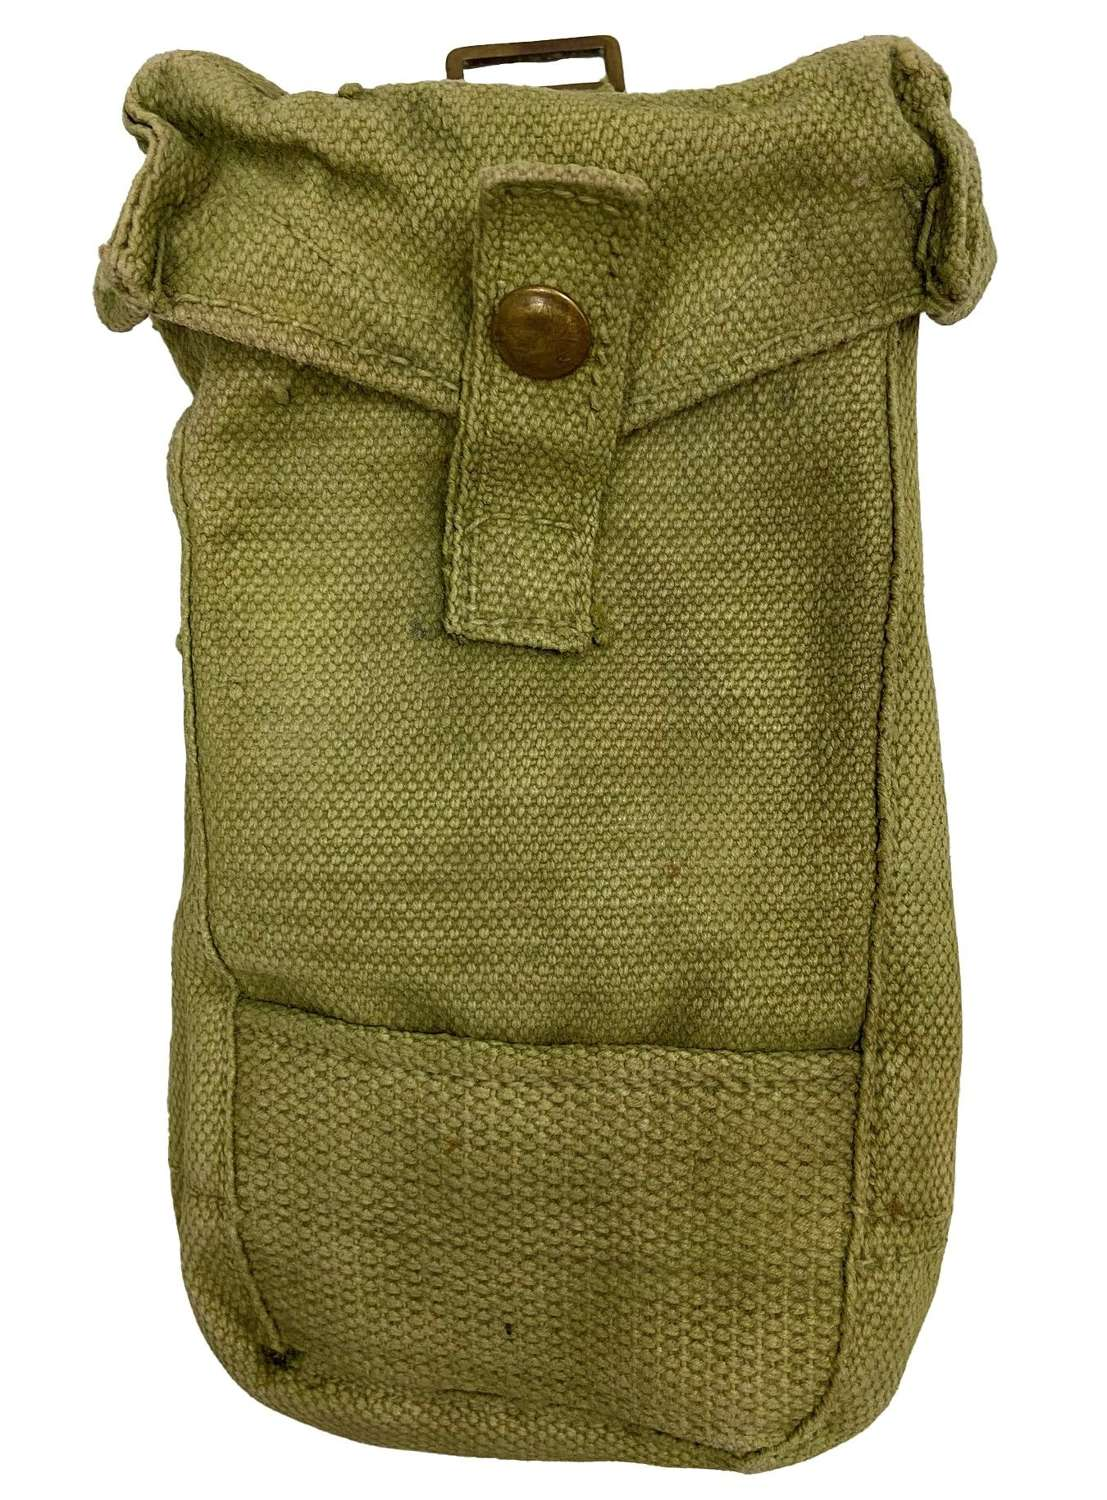 Original Early WW2 Indian Made MKI 1937 Pattern Universal Pouch